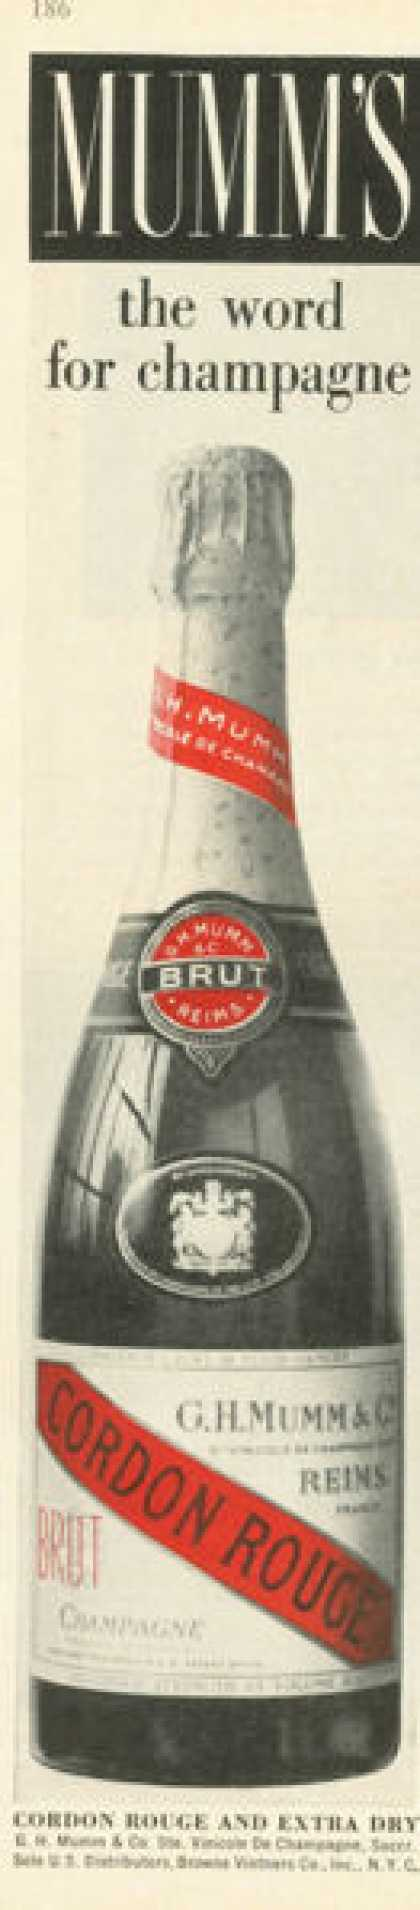 Mumm's Cordon Rouge Champagne Bottle (1961)